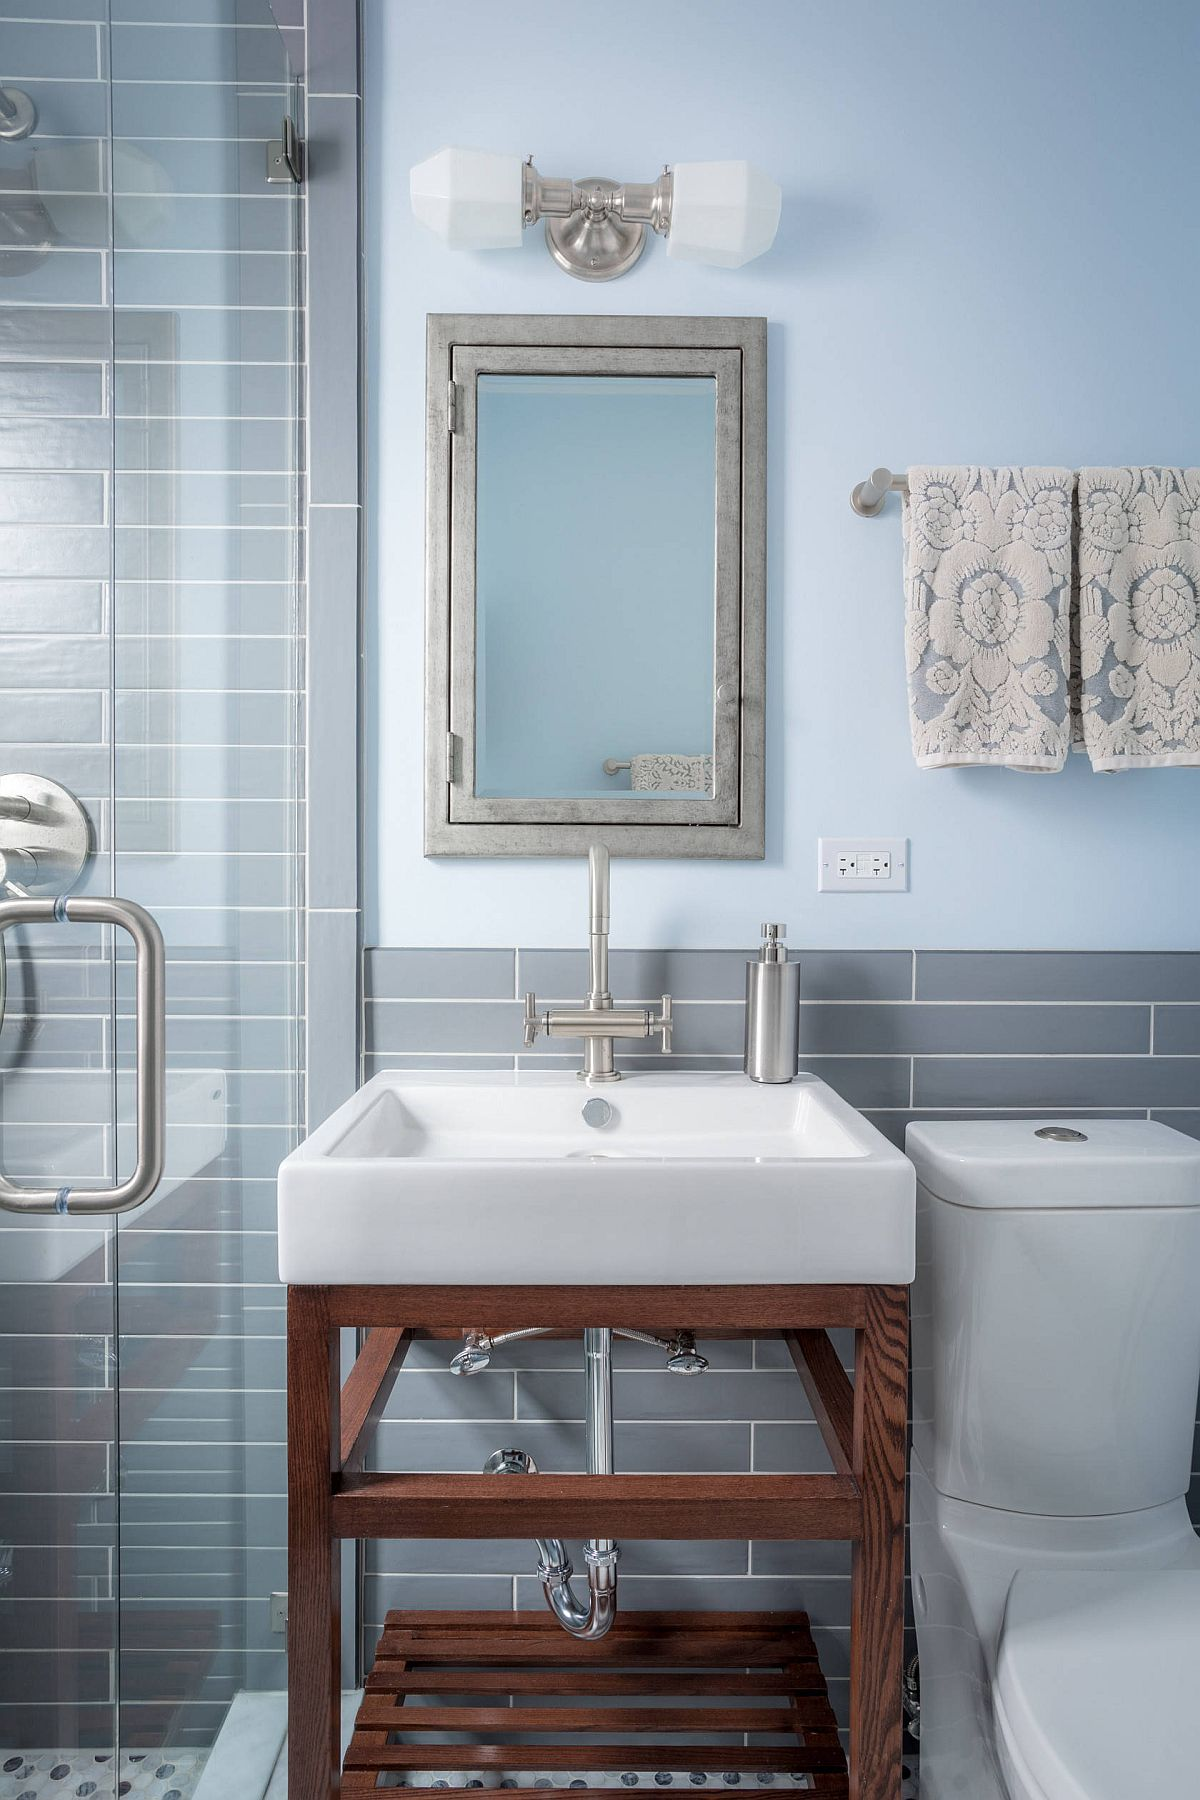 Modern gray and blue bathroom with small wooden vanity and lovely lighting